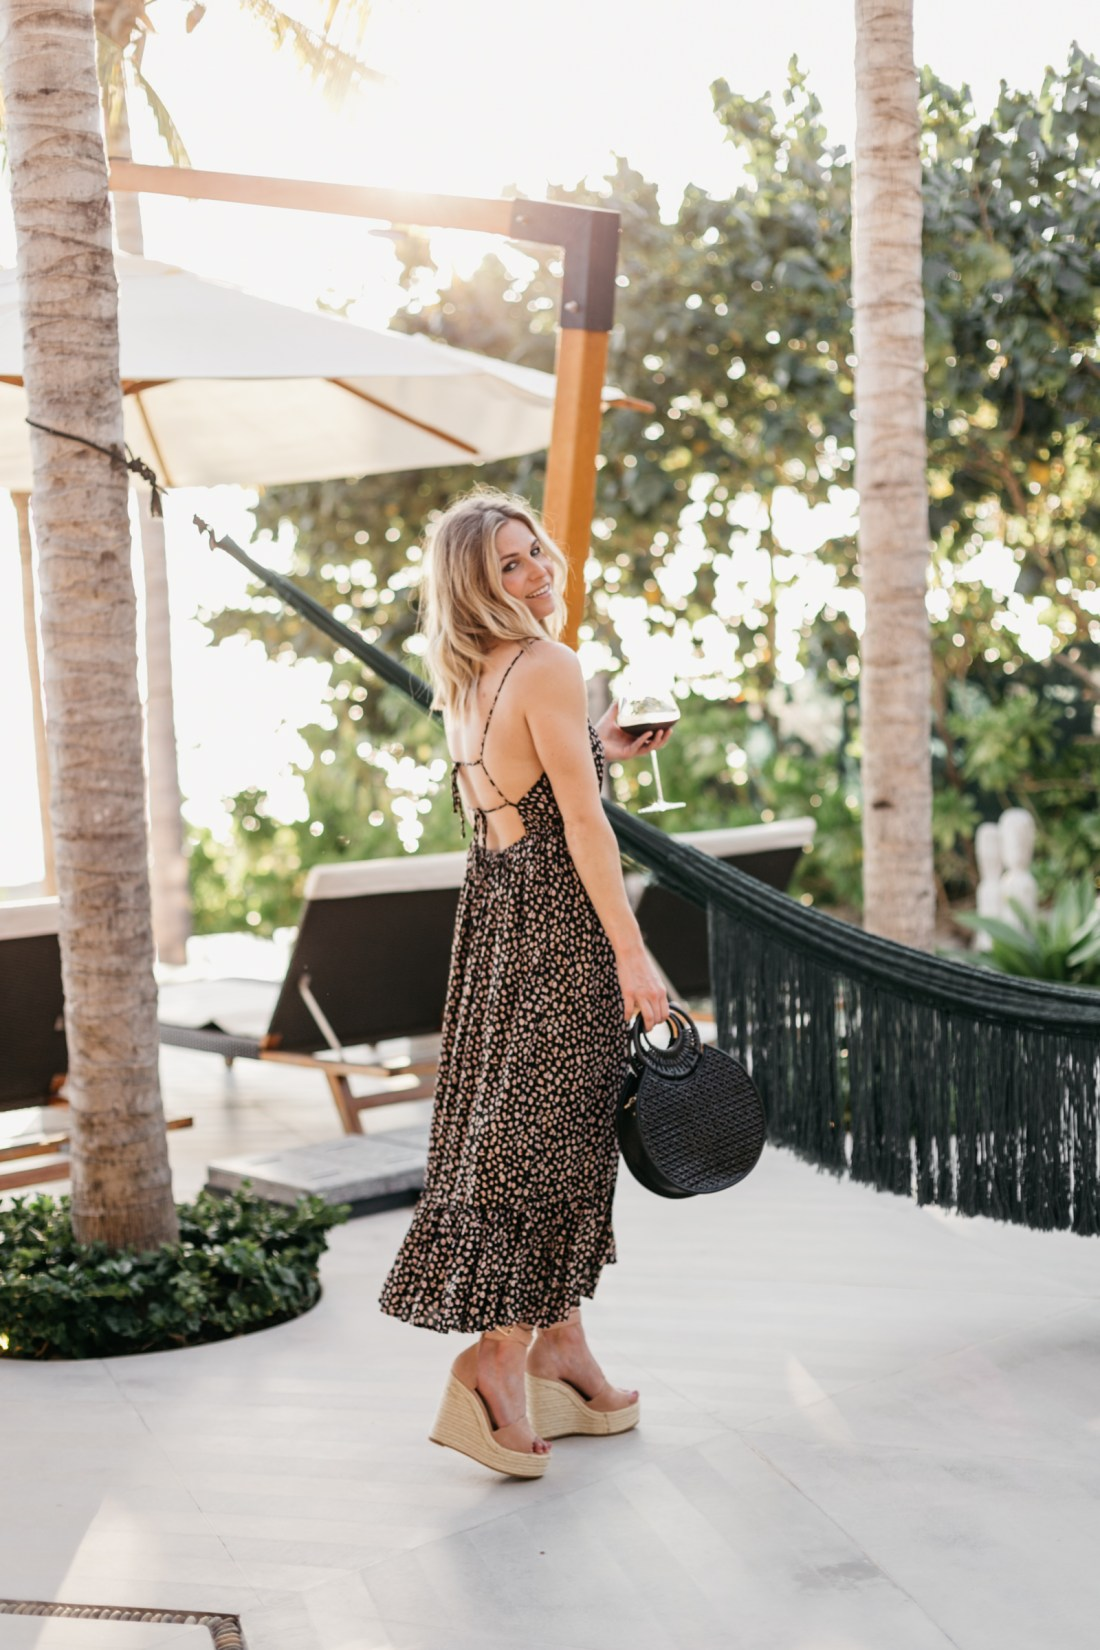 Brooke is wearing a Blue Floral Open Back Dress // Tan Strappy Wedges // Black Woven Clutch